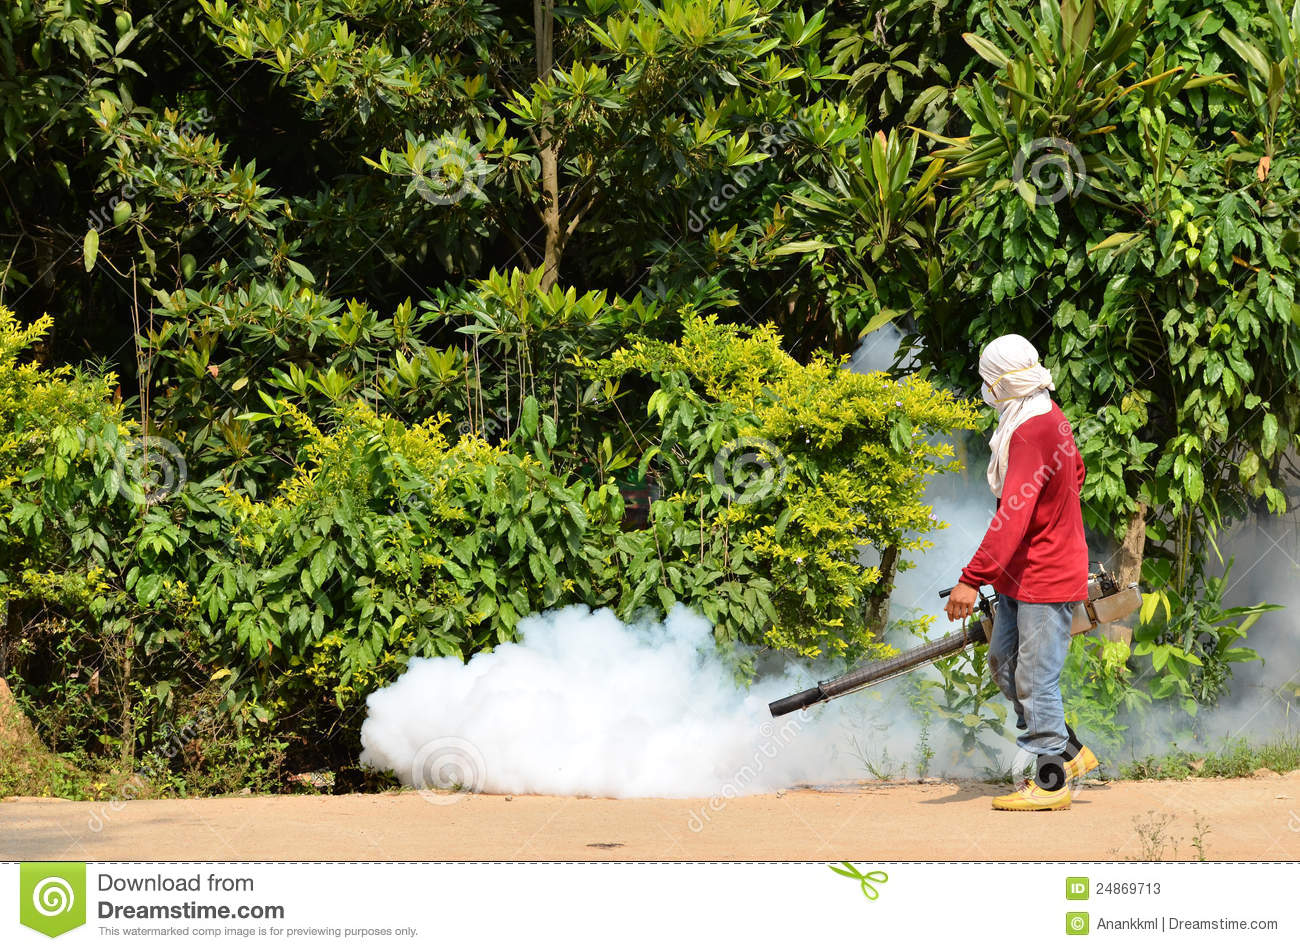 prevent spread dengue fever essay Prevent dengue home / health authorities are on the alert for dengue fever and have issued some advice to mitigate the spread of the potentially deadly disease.